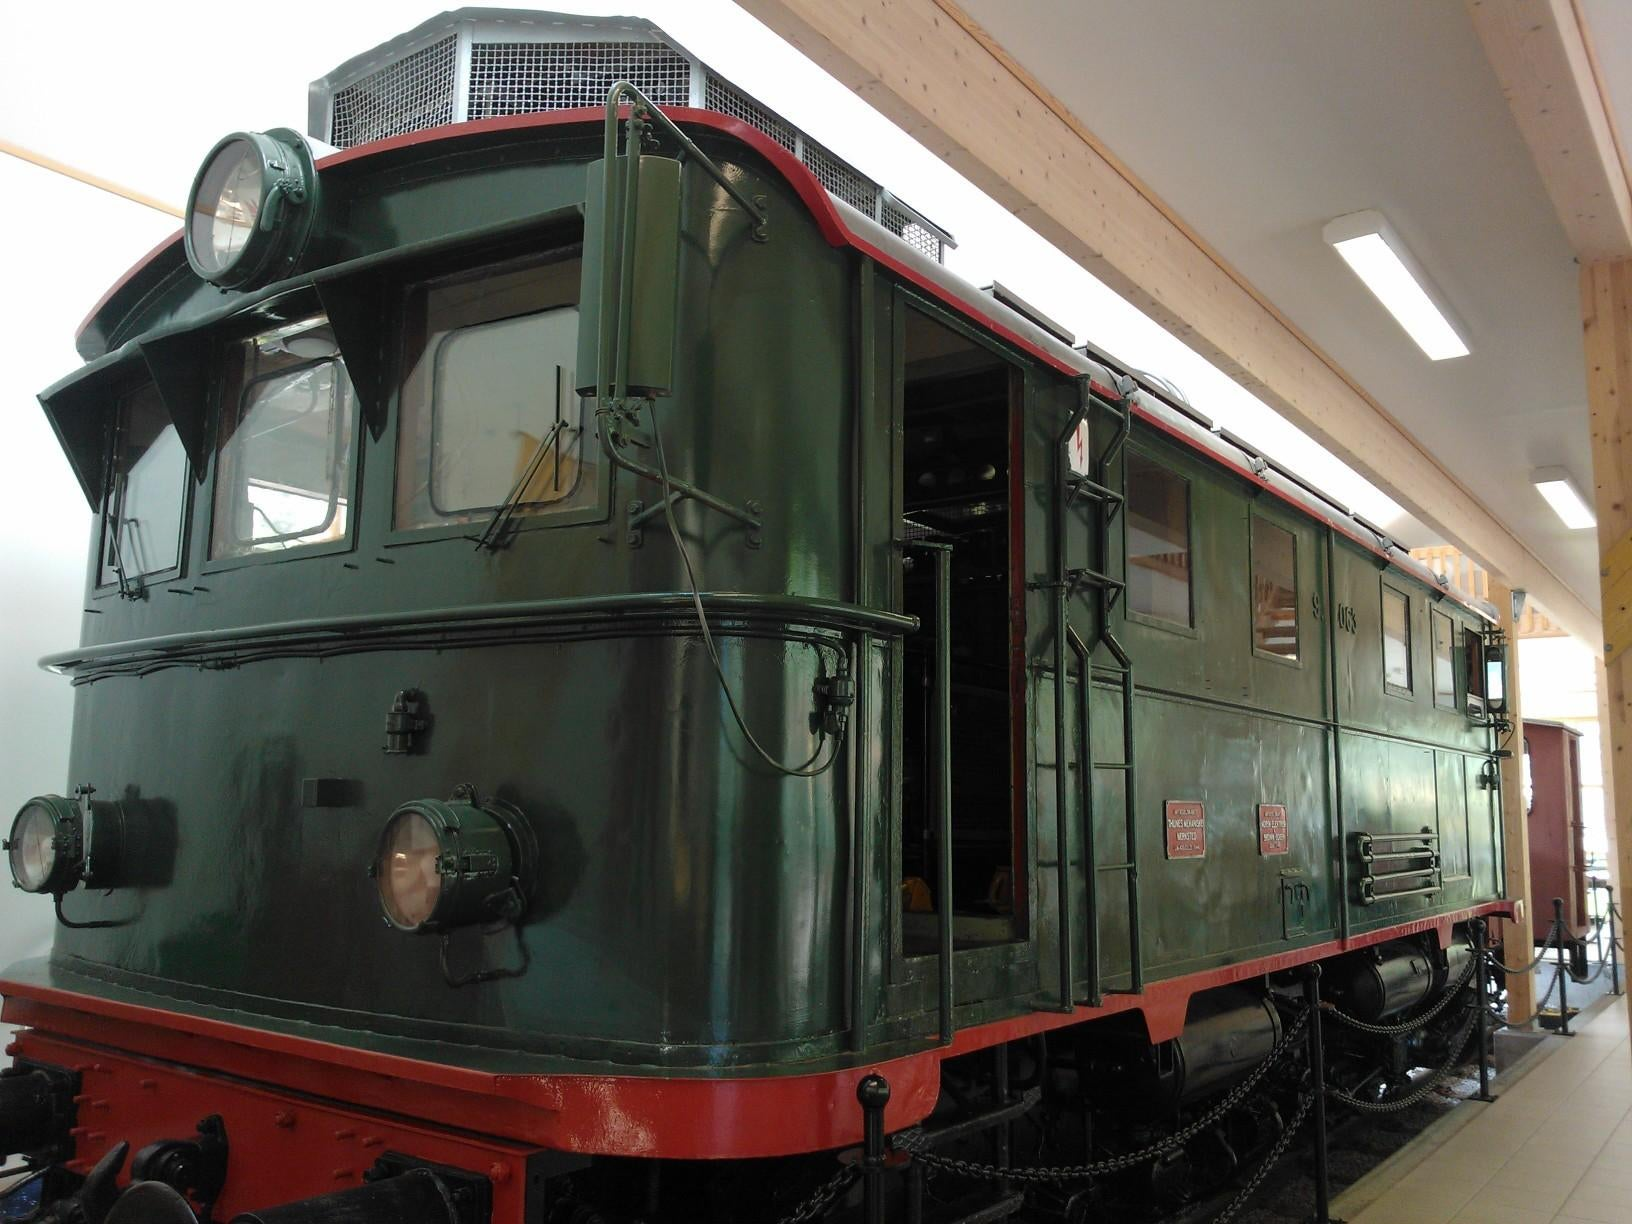 The Flaam train Museum